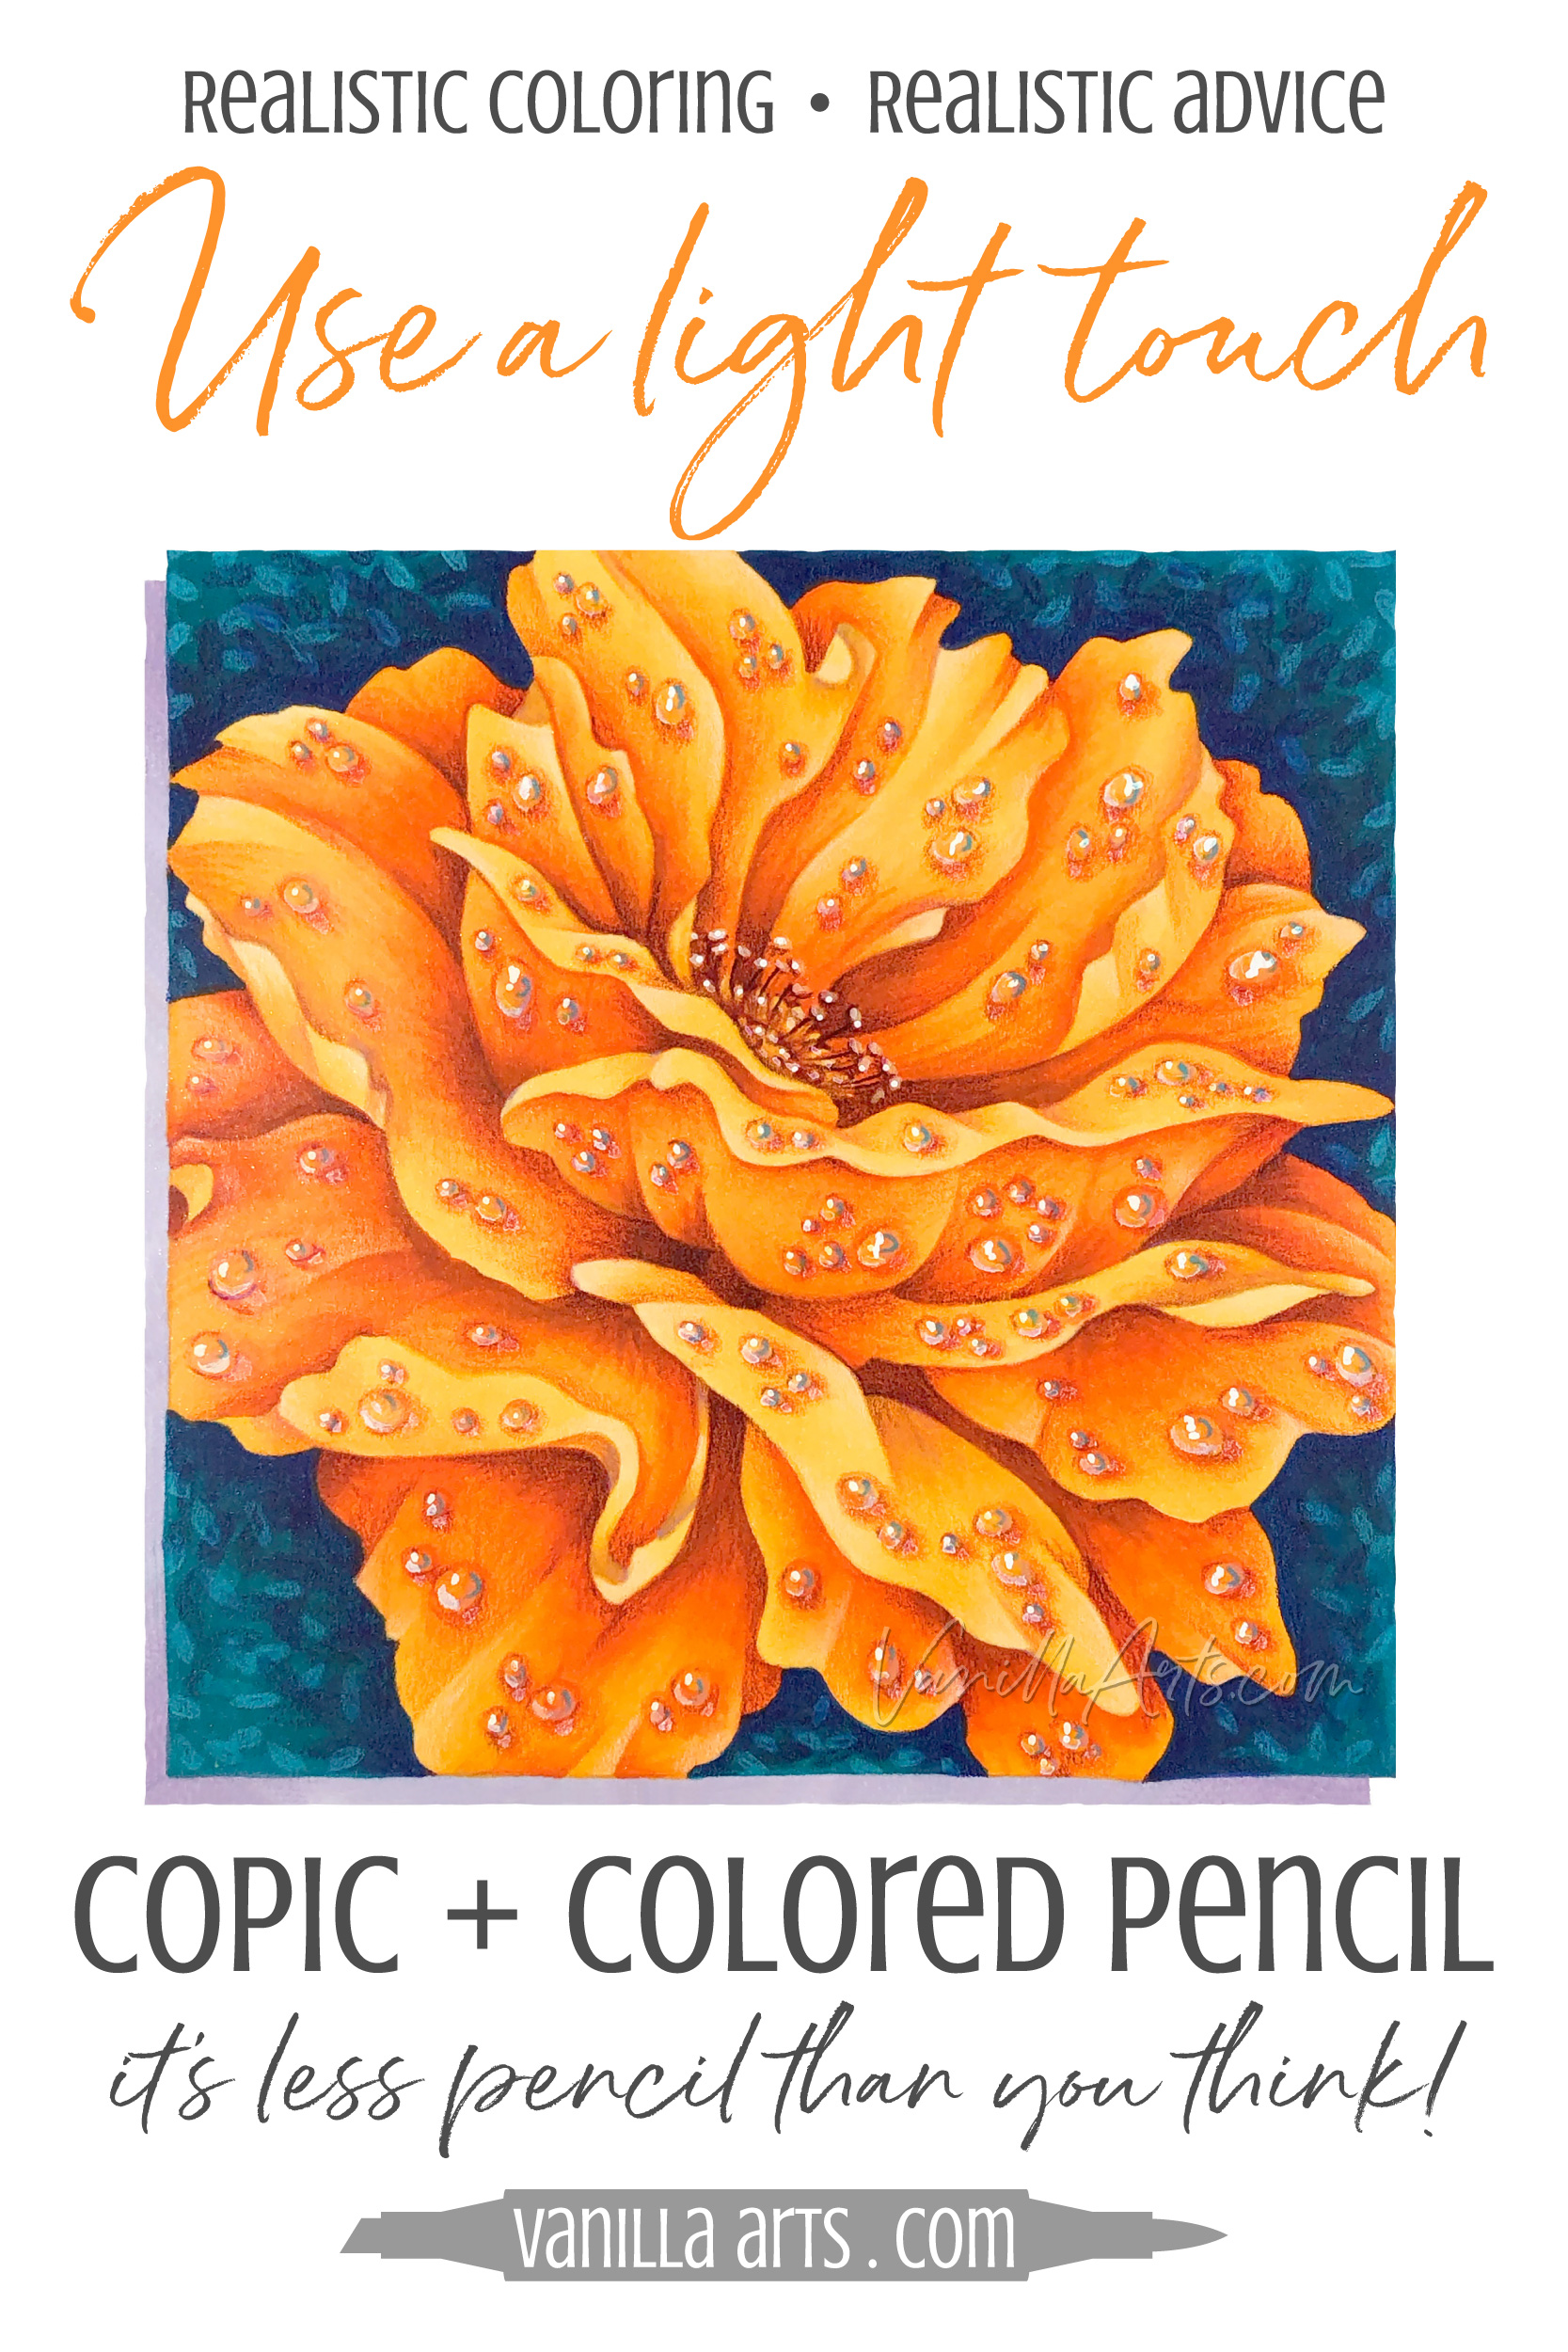 What's the secret to mixing Copic Markers and colored pencils? Learn the secret to a balanced approach to mixed media, to improve your depth, dimension, and artistry. | VanillaArts.com | #copicmarker #realisticcoloring #howtocolor